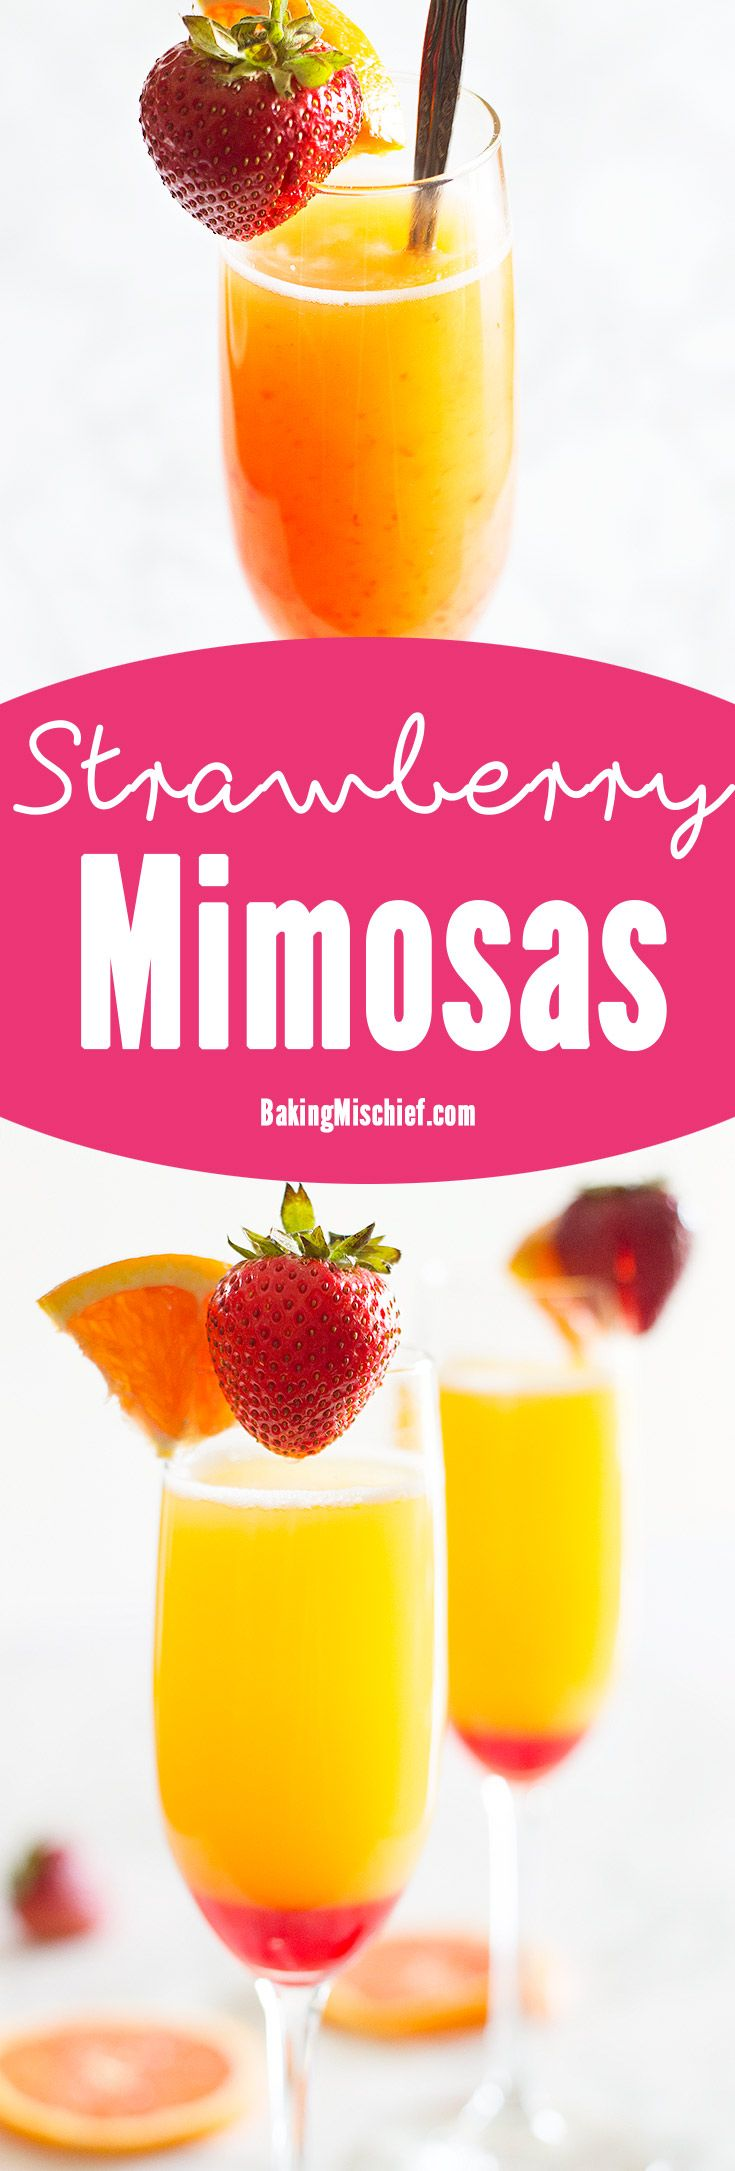 "Make brunch even better with a simple but beautiful strawberry upgrade to your classic mimosa recipe. Recipe includes nutritional information and ""mocktail"" instructions. From BakingMischief.com"